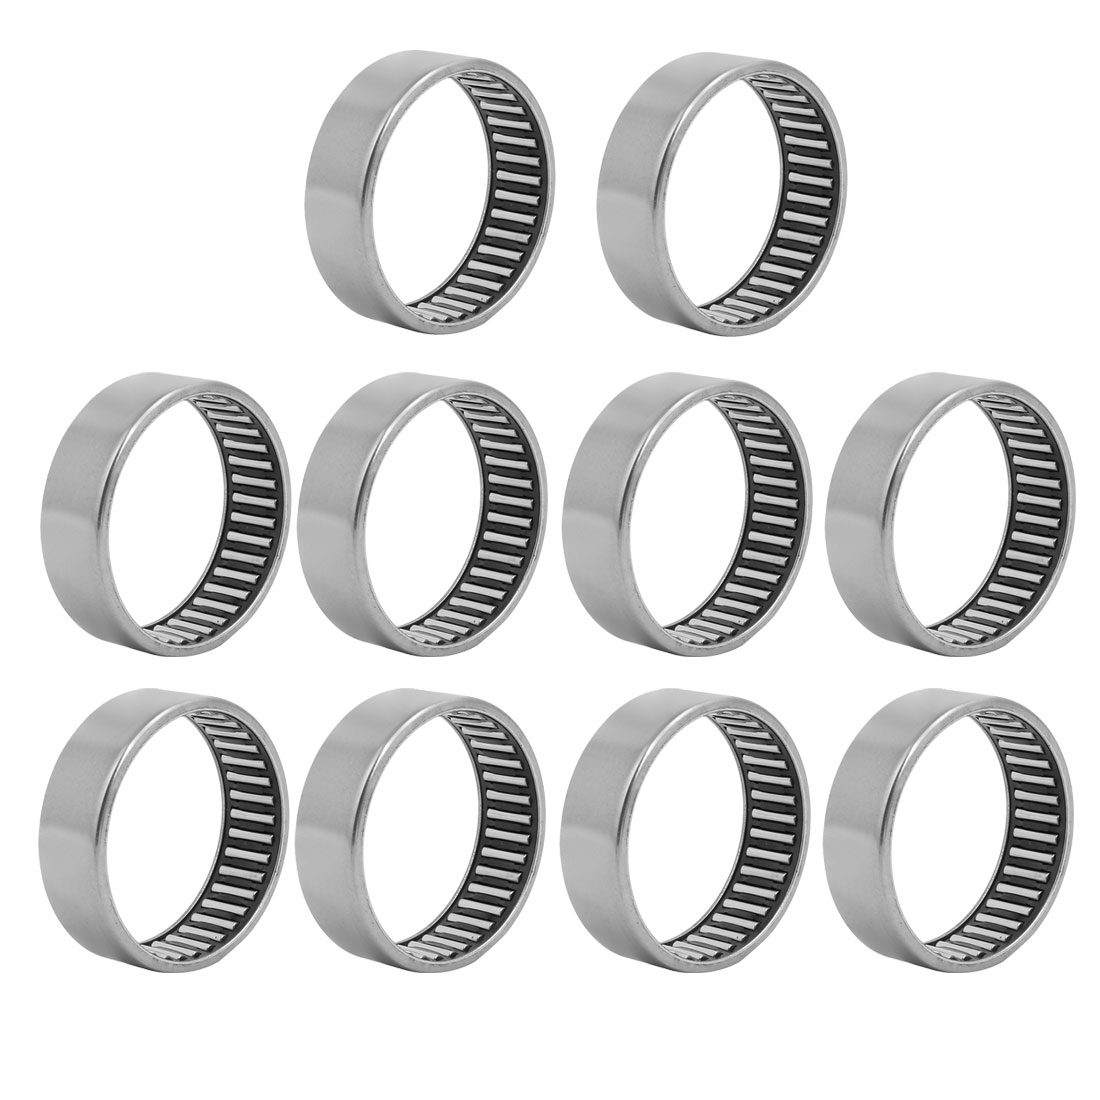 HK5520 63mmx55mm Drawn Cup Open End Needle Roller Bearing Silver Tone 5pcs